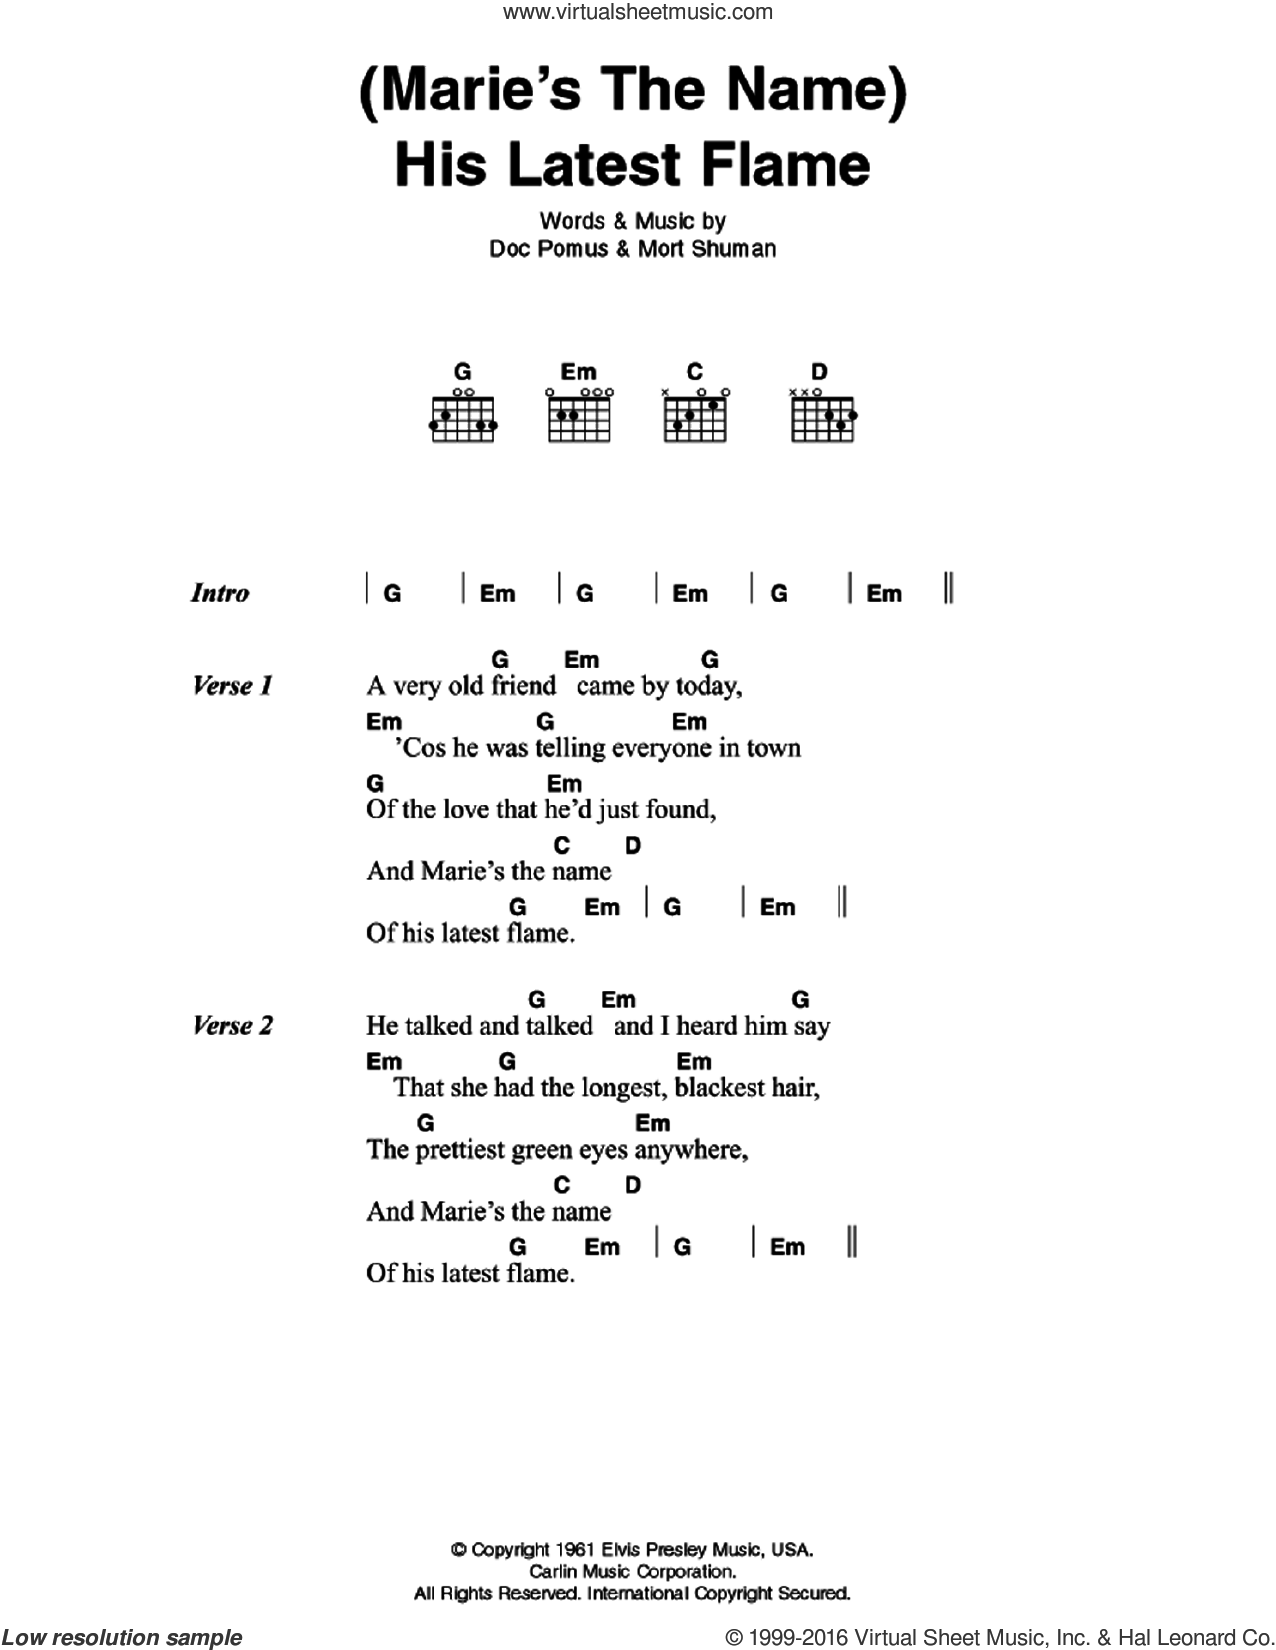 (Marie's The Name) His Latest Flame sheet music for guitar (chords) by Elvis Presley, Doc Pomus and Mort Shuman, intermediate skill level